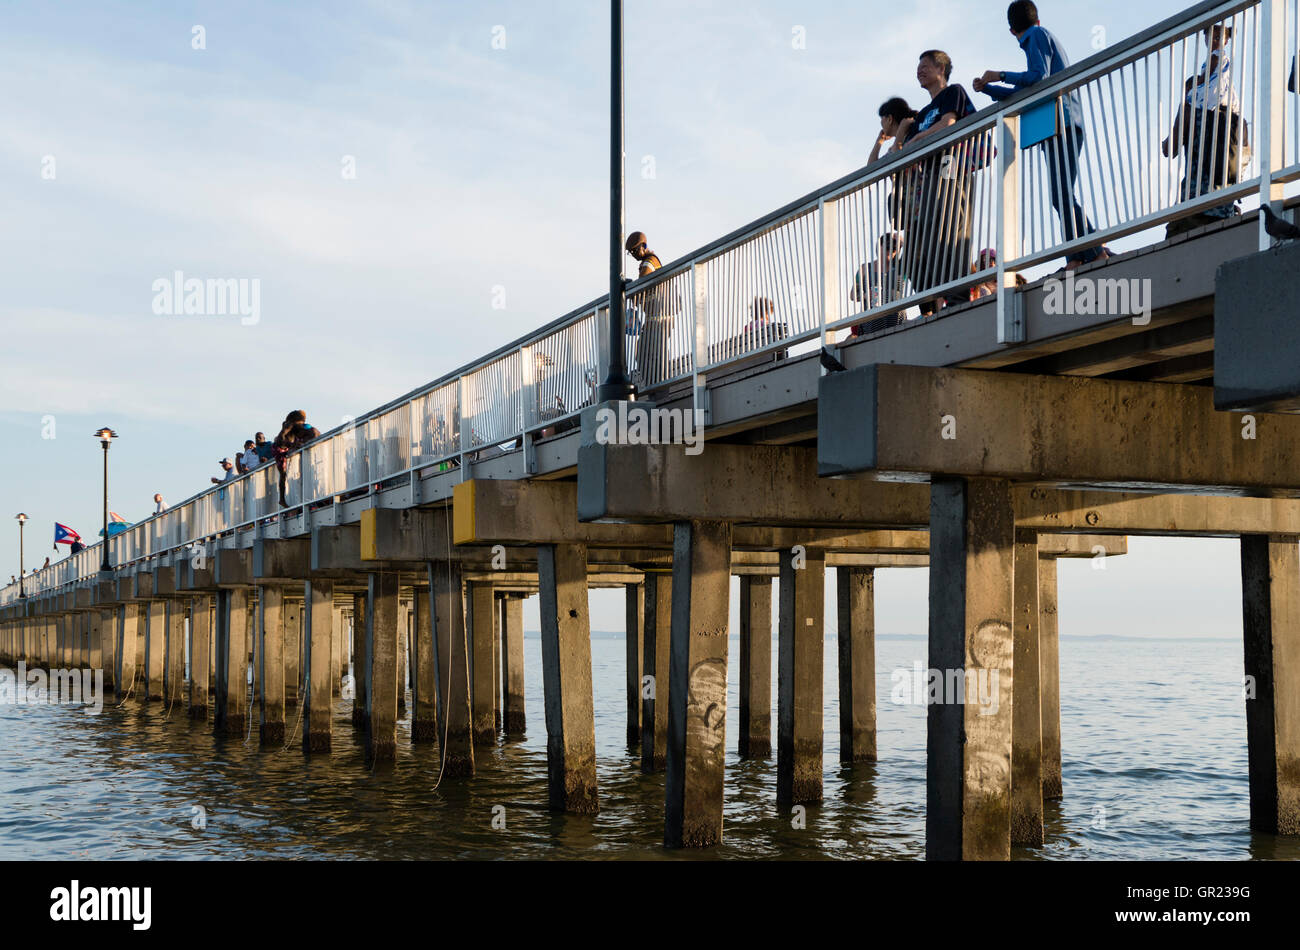 People looking out to sea on the Steeplechase wooden pier on Coney Island beach and boardwalk, New York Stock Photo